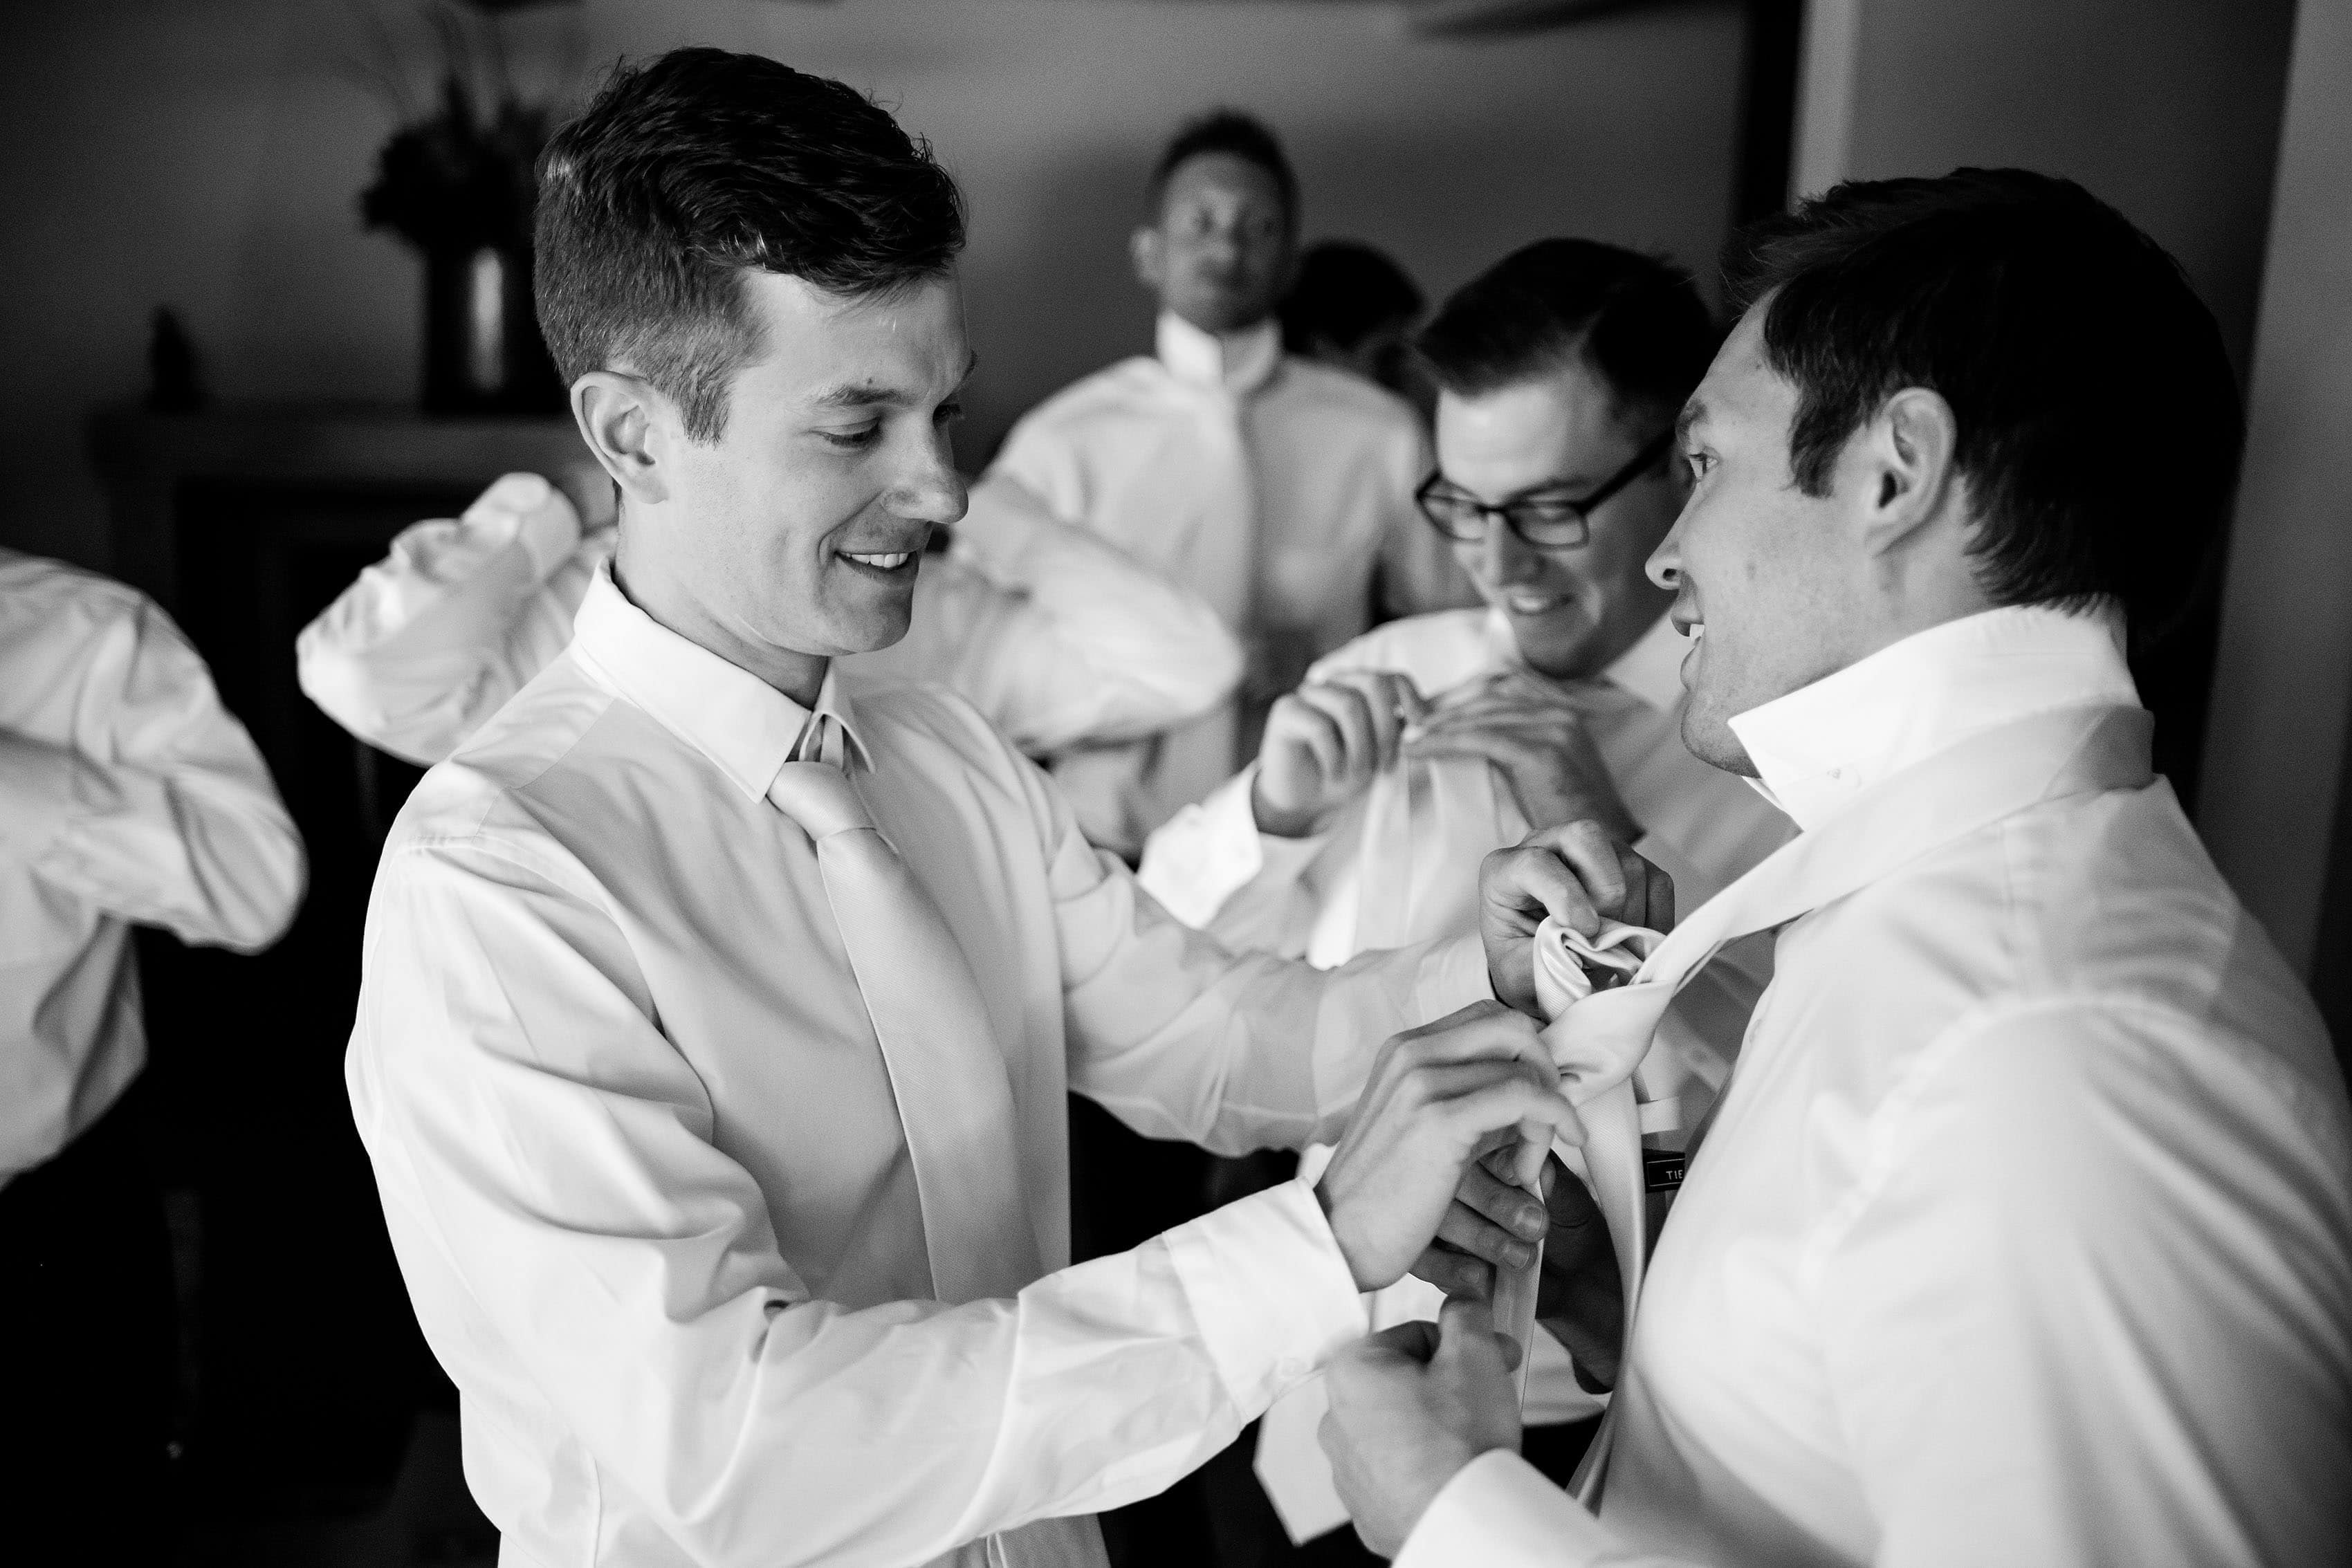 The groom helps groomsmen get ready before the wedding